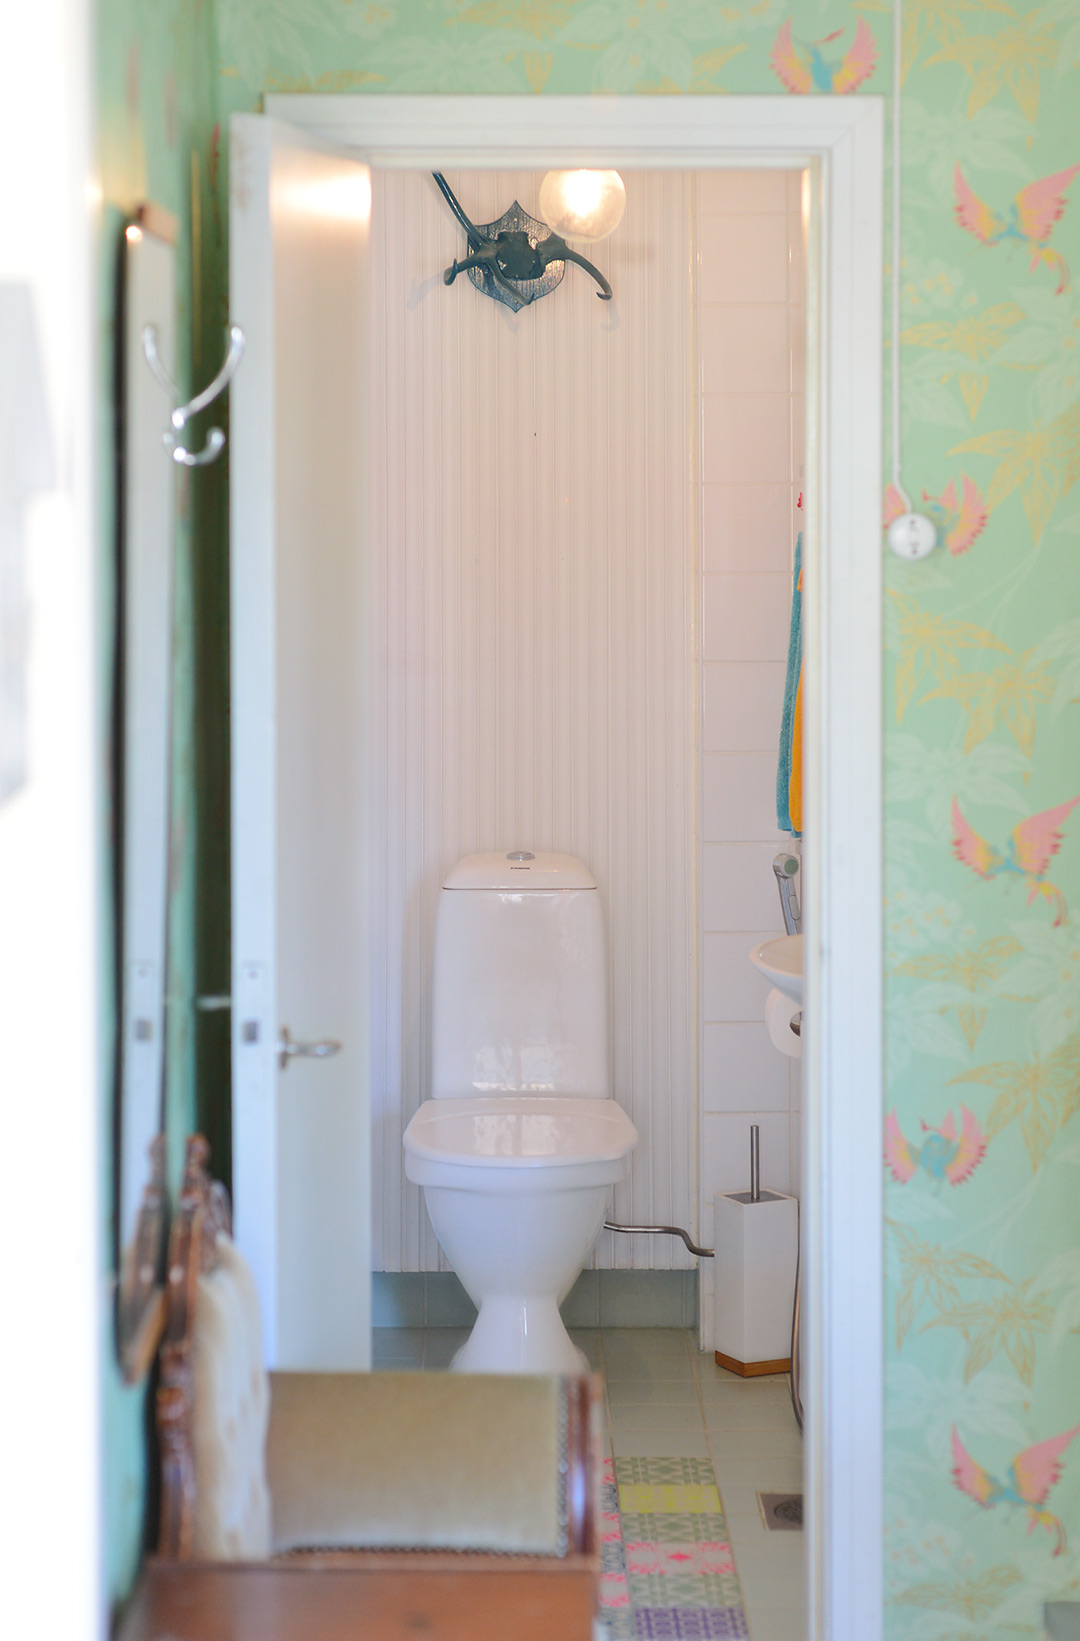 The turquoise / mint color scheme continues from the foyer in to the bathroom